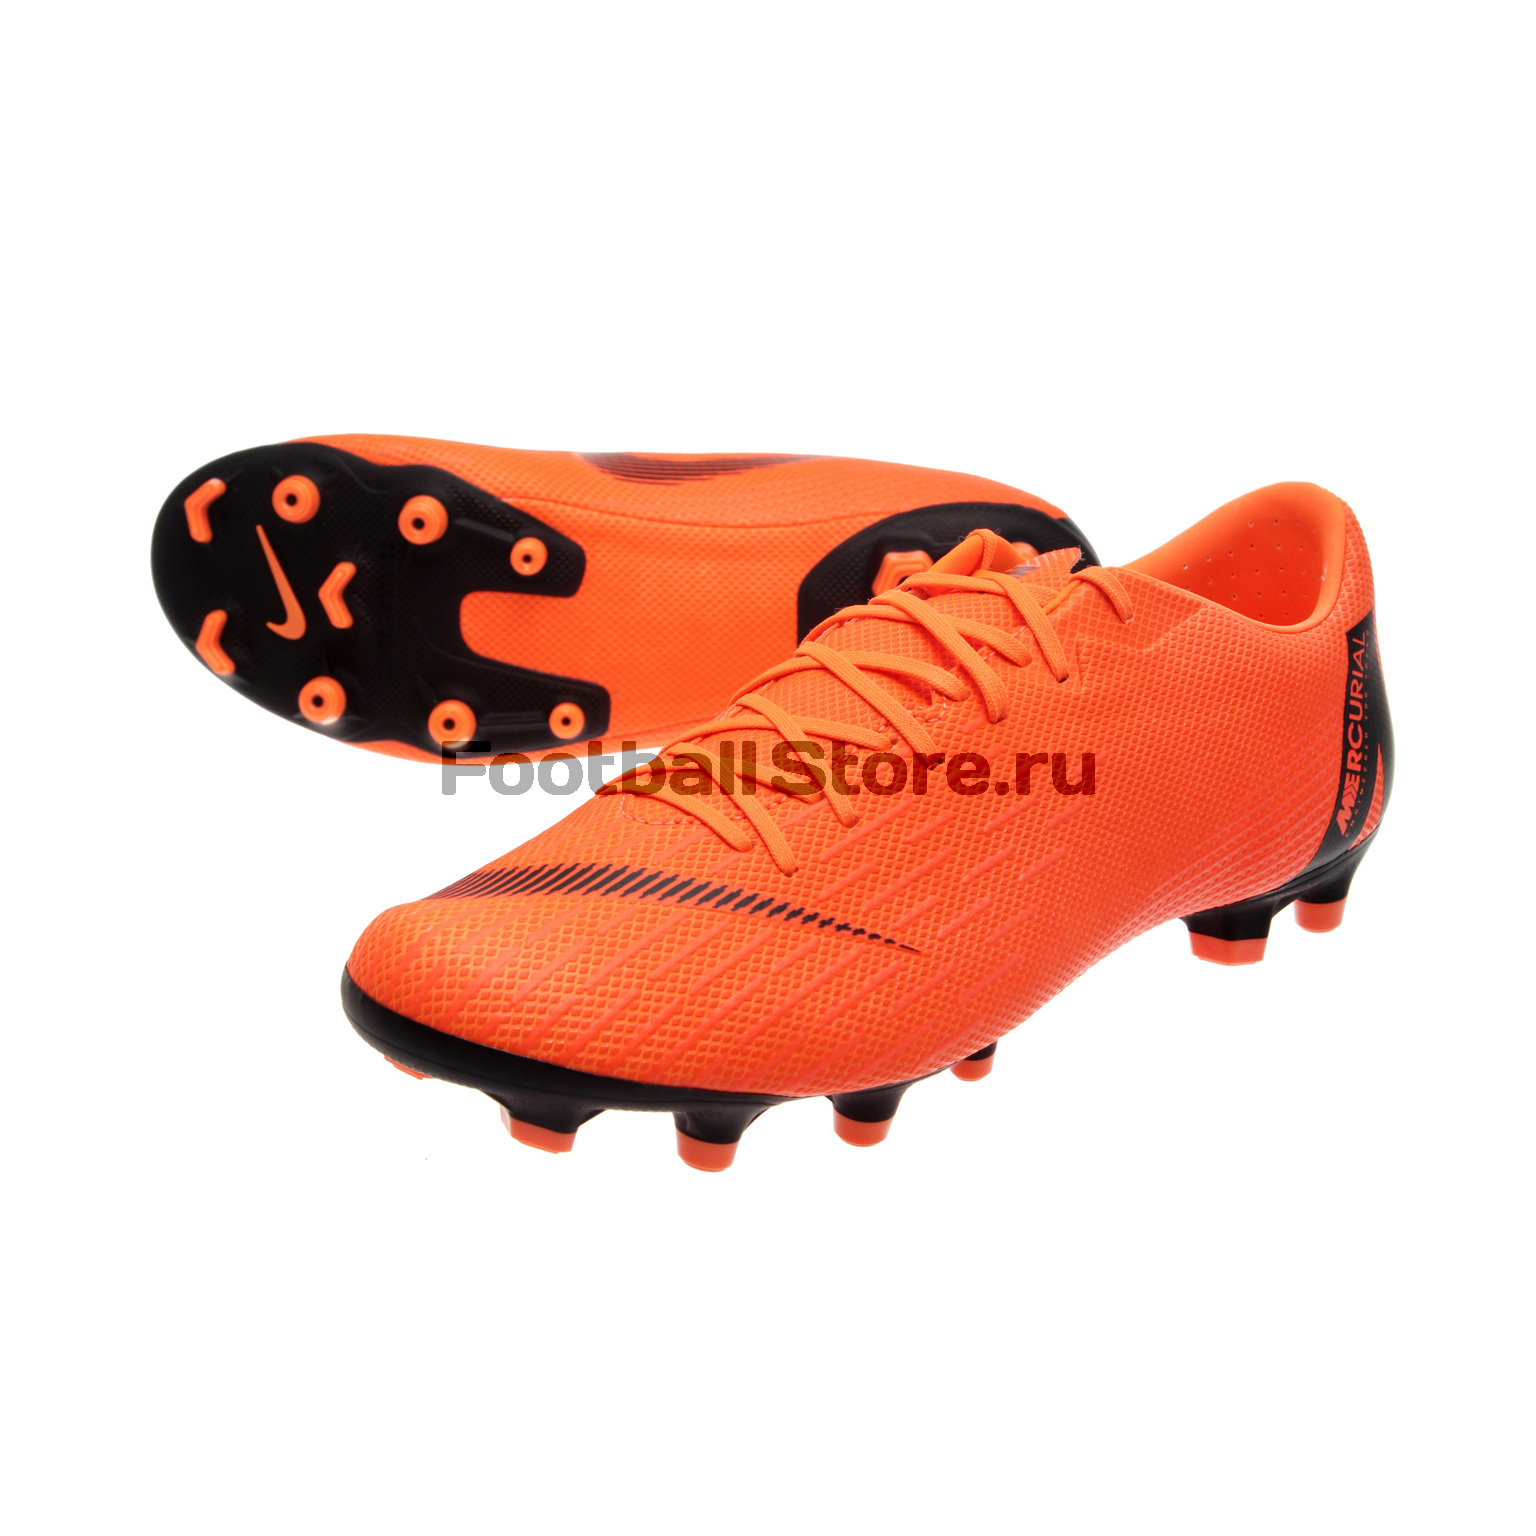 Бутсы Nike Vapor 12 Academy FG/MG AH7375-810 бутсы nike superfly academy gs cr7 jr fg mg aj3111 390